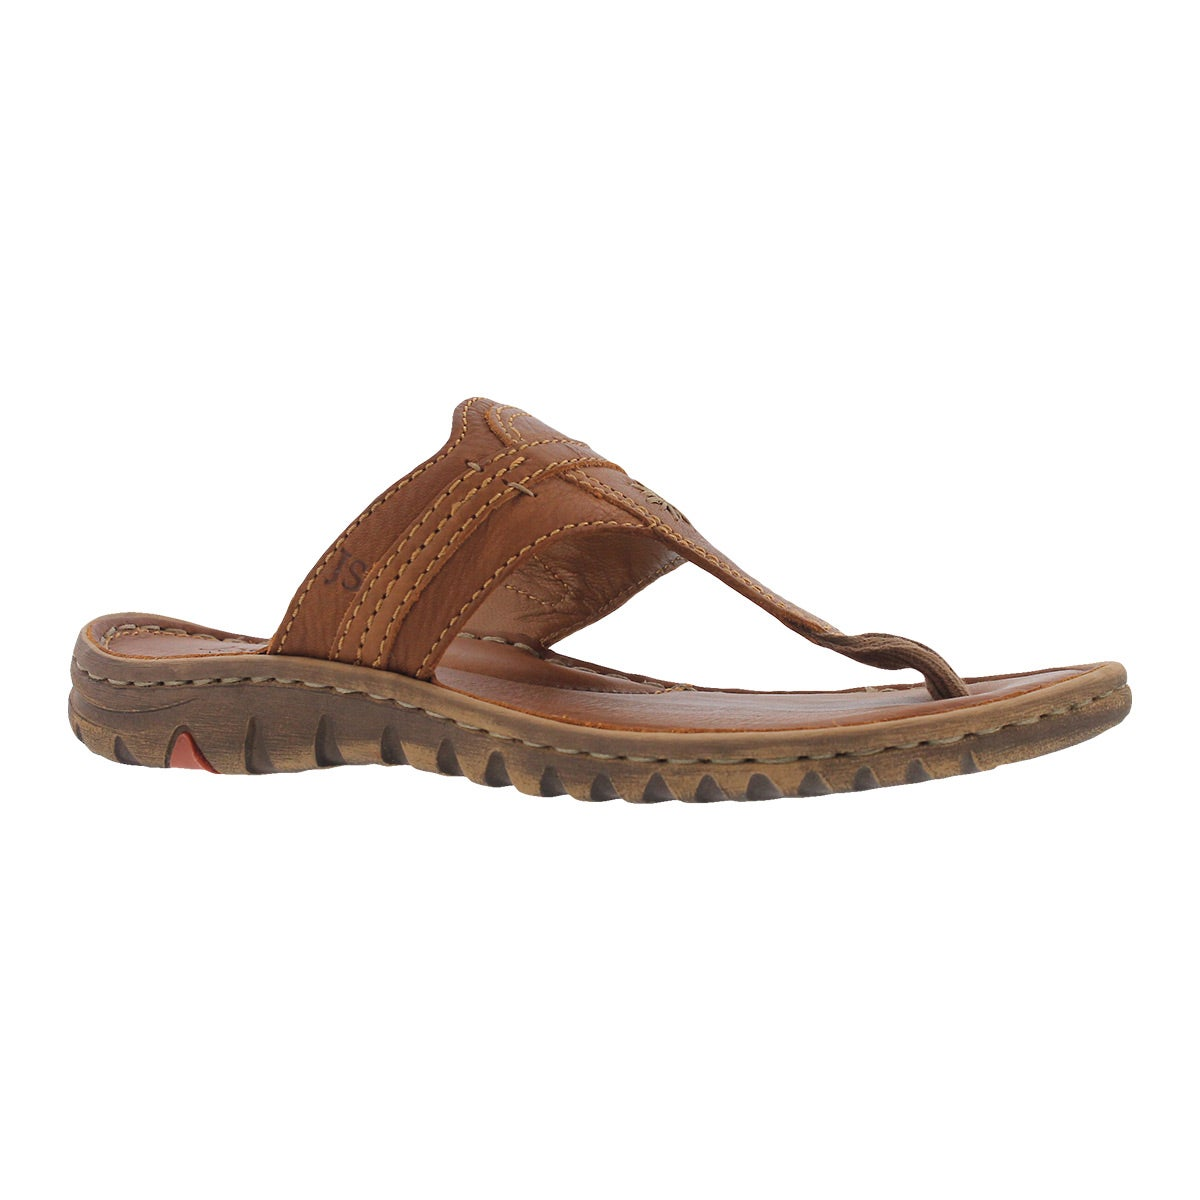 Woemn's LUCIA 09 castagne casual thng sandals